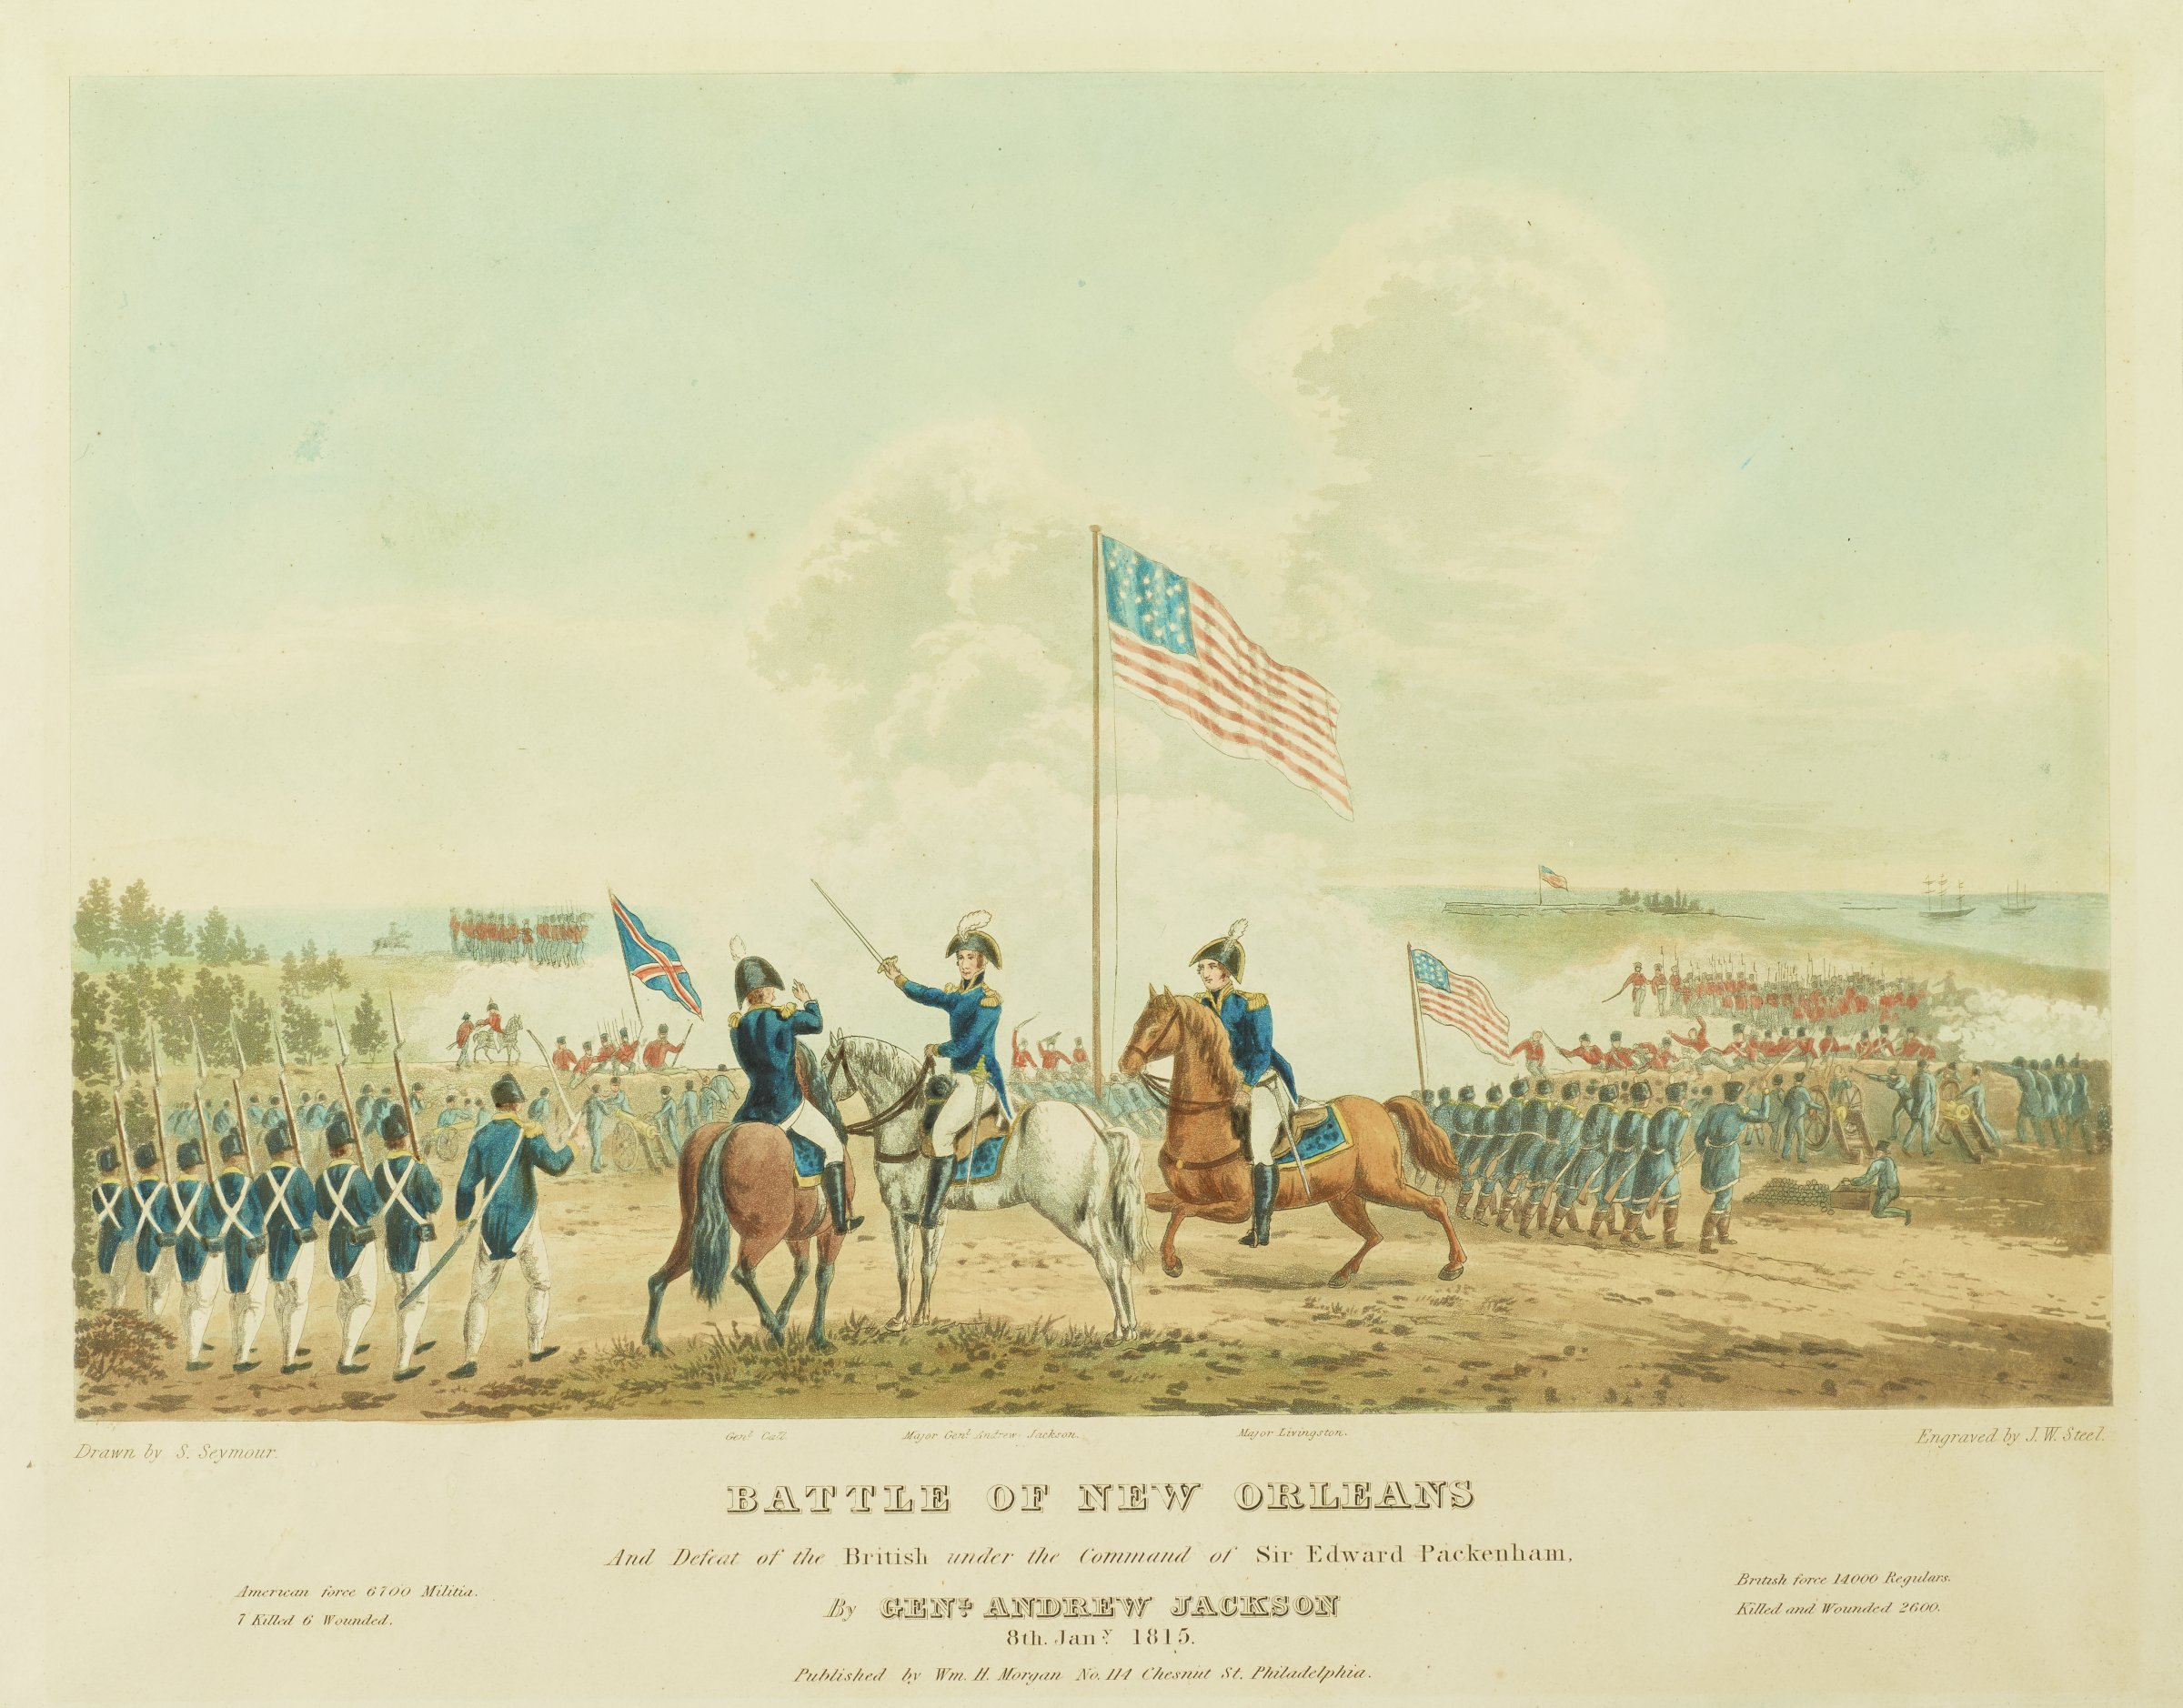 Battle of New Orleans and Defeat of the British Under the Command of Sir Edward Packenham by General Andrew Jackson, 8 Jan., 1815, Engraved by James W. Steel, After a drawing by Samuel Seymour, Published by William H. Morgan, hand-colored aquatint